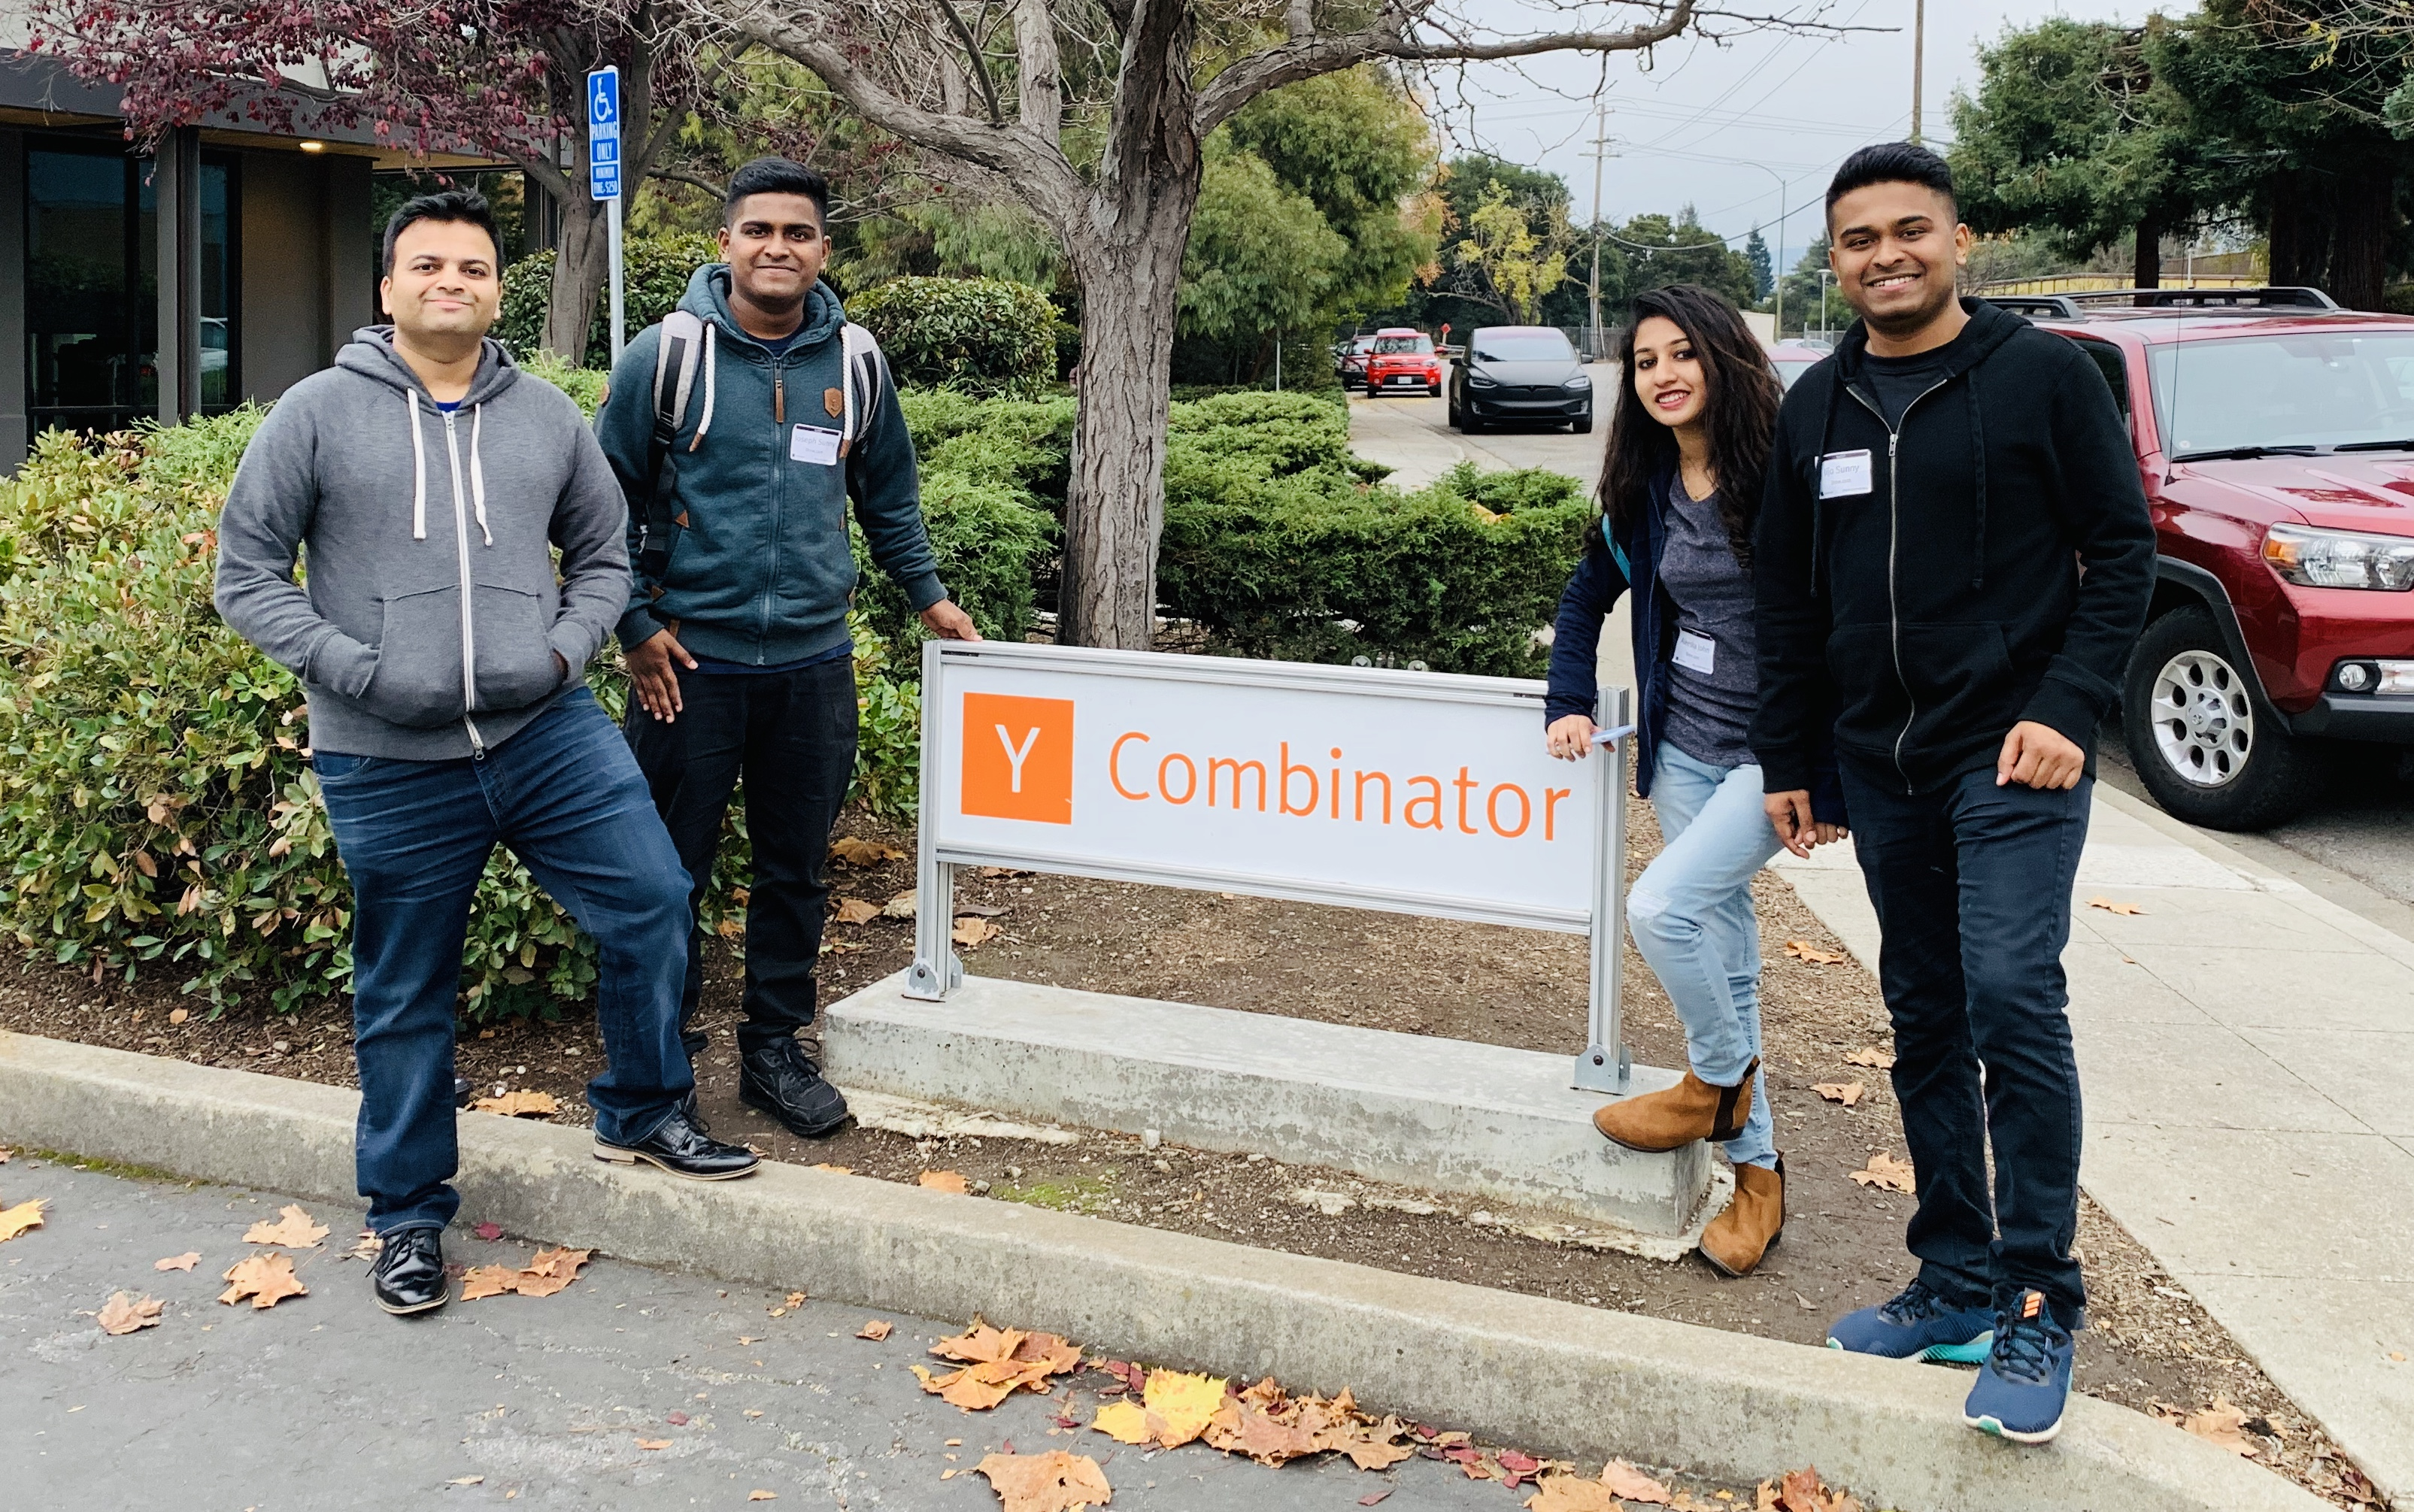 Y Combinator bets on the booming podcast industry